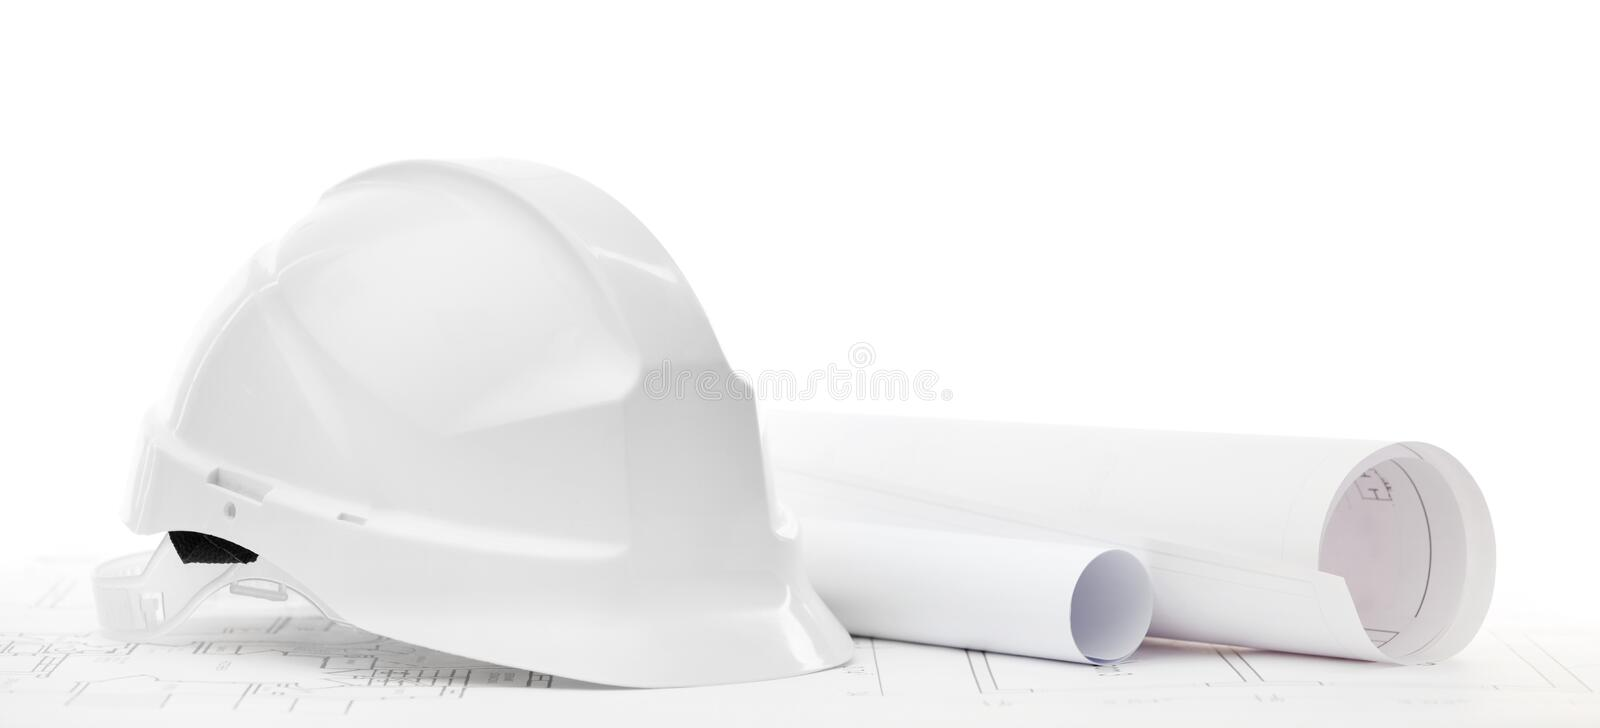 Tools & Construction: Plastic Safety Googles Stock Photo